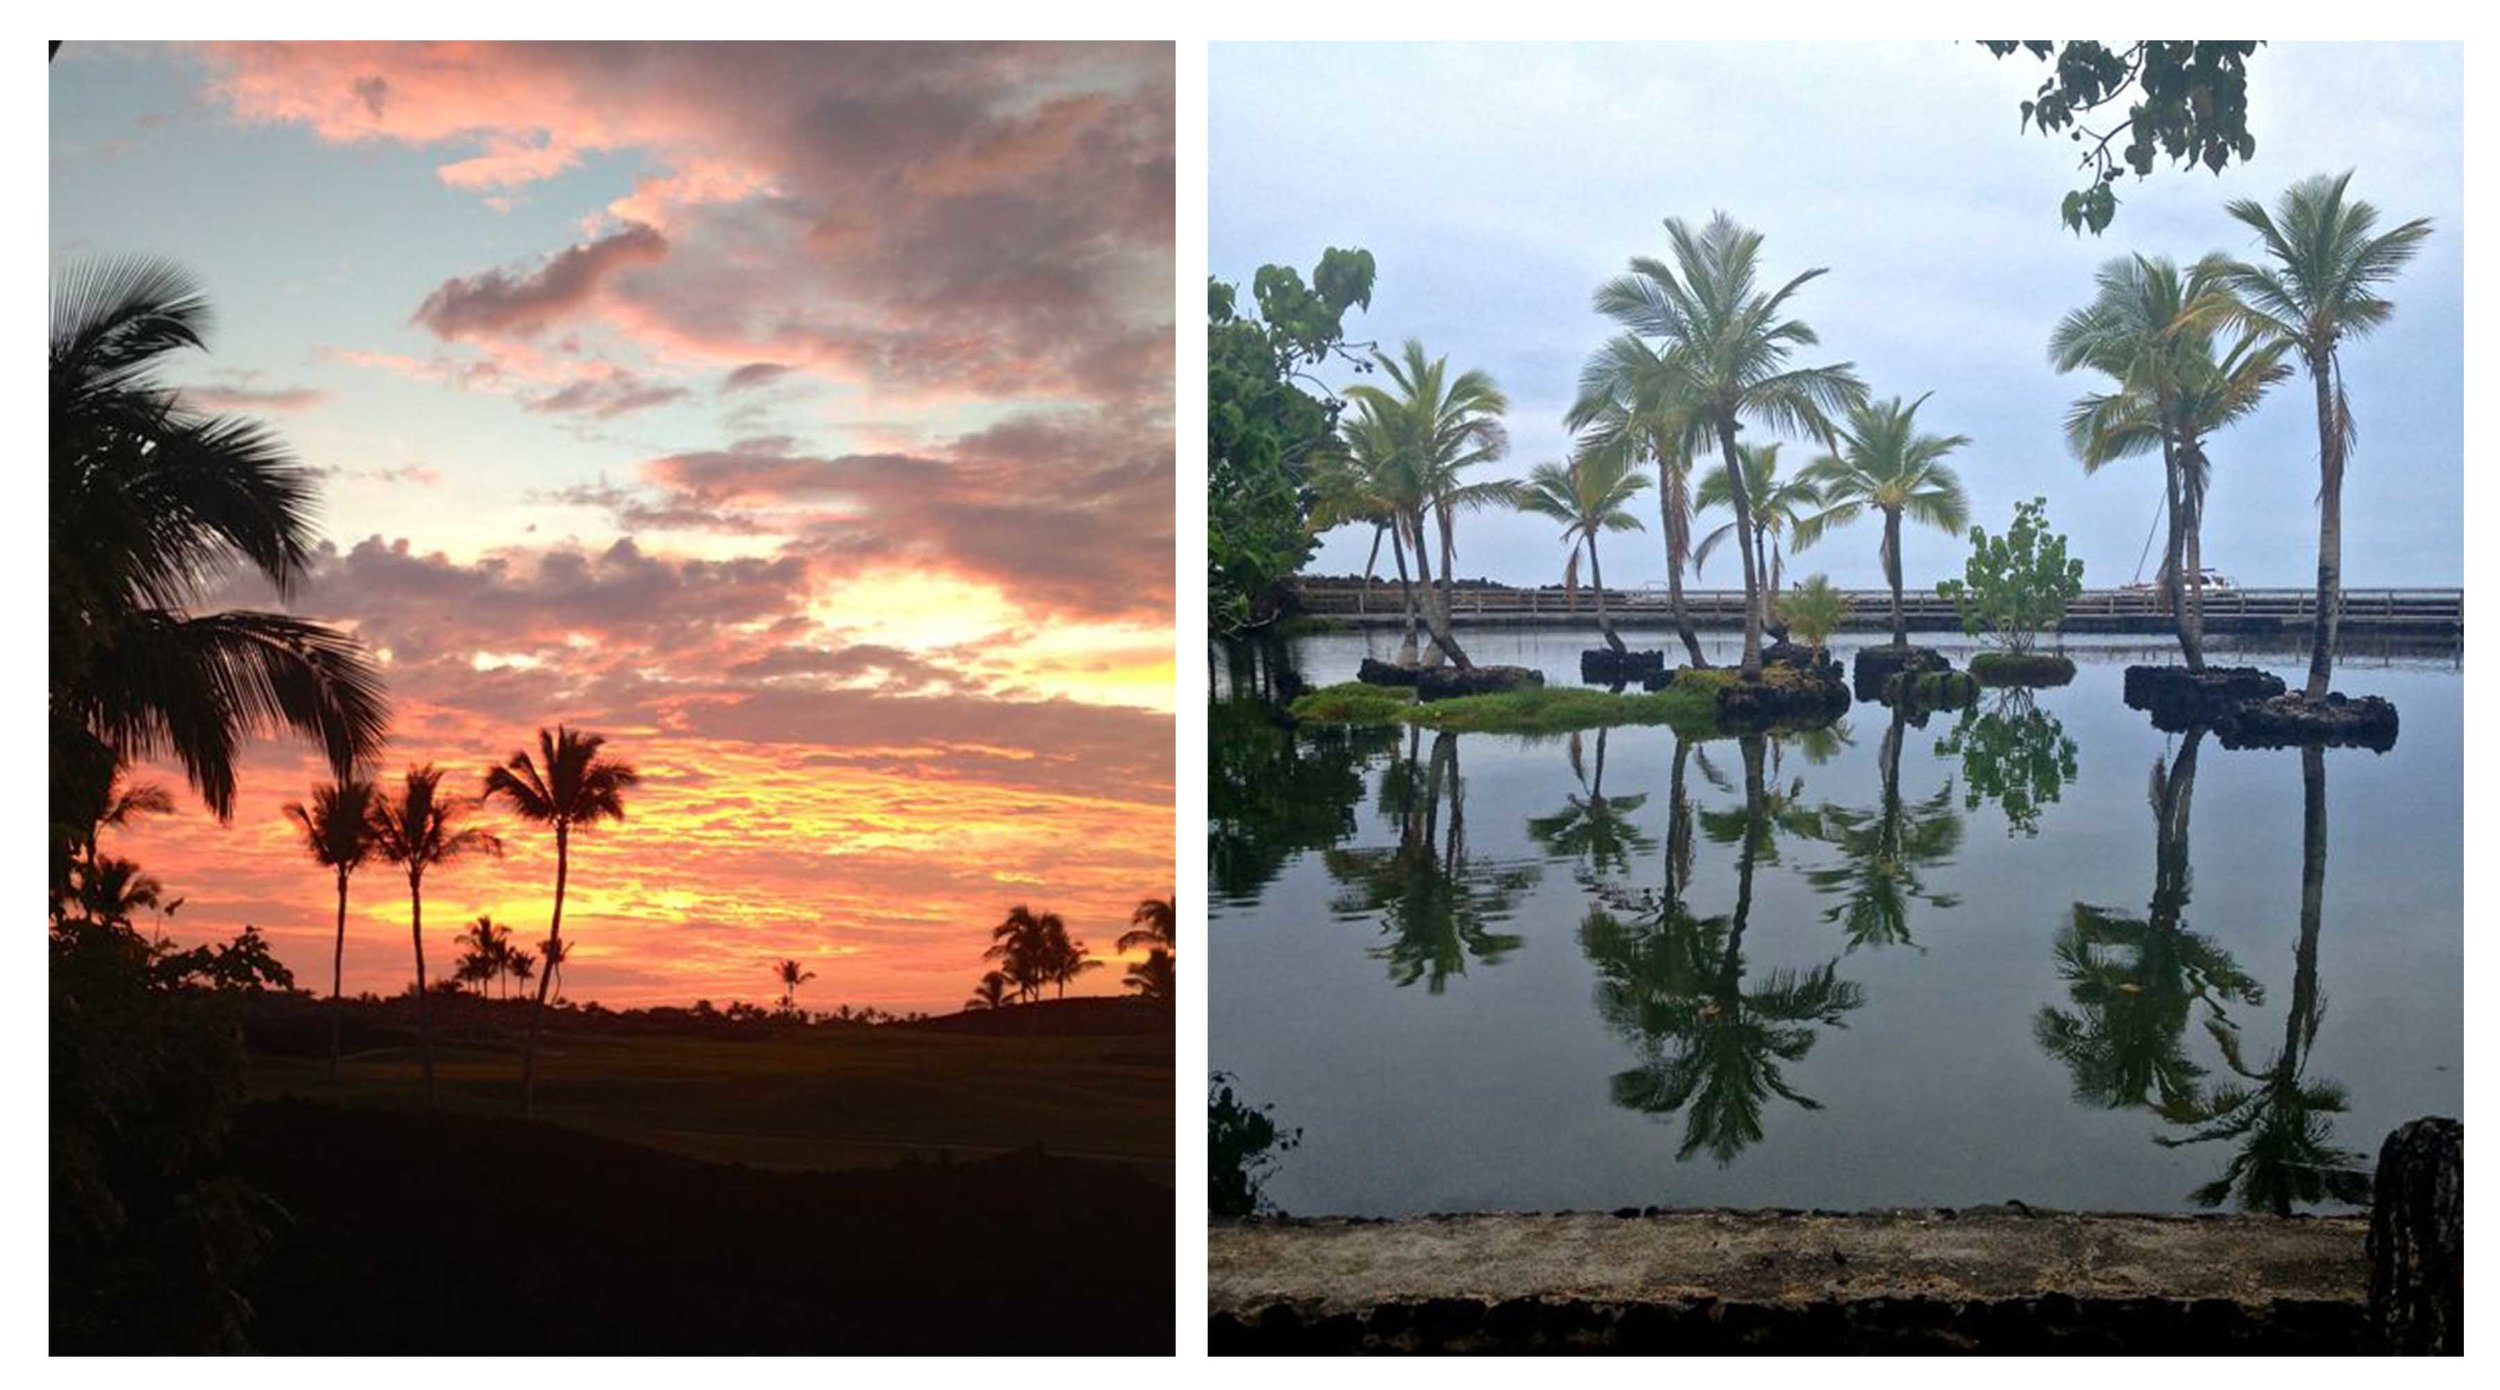 Sunset and late afternoon